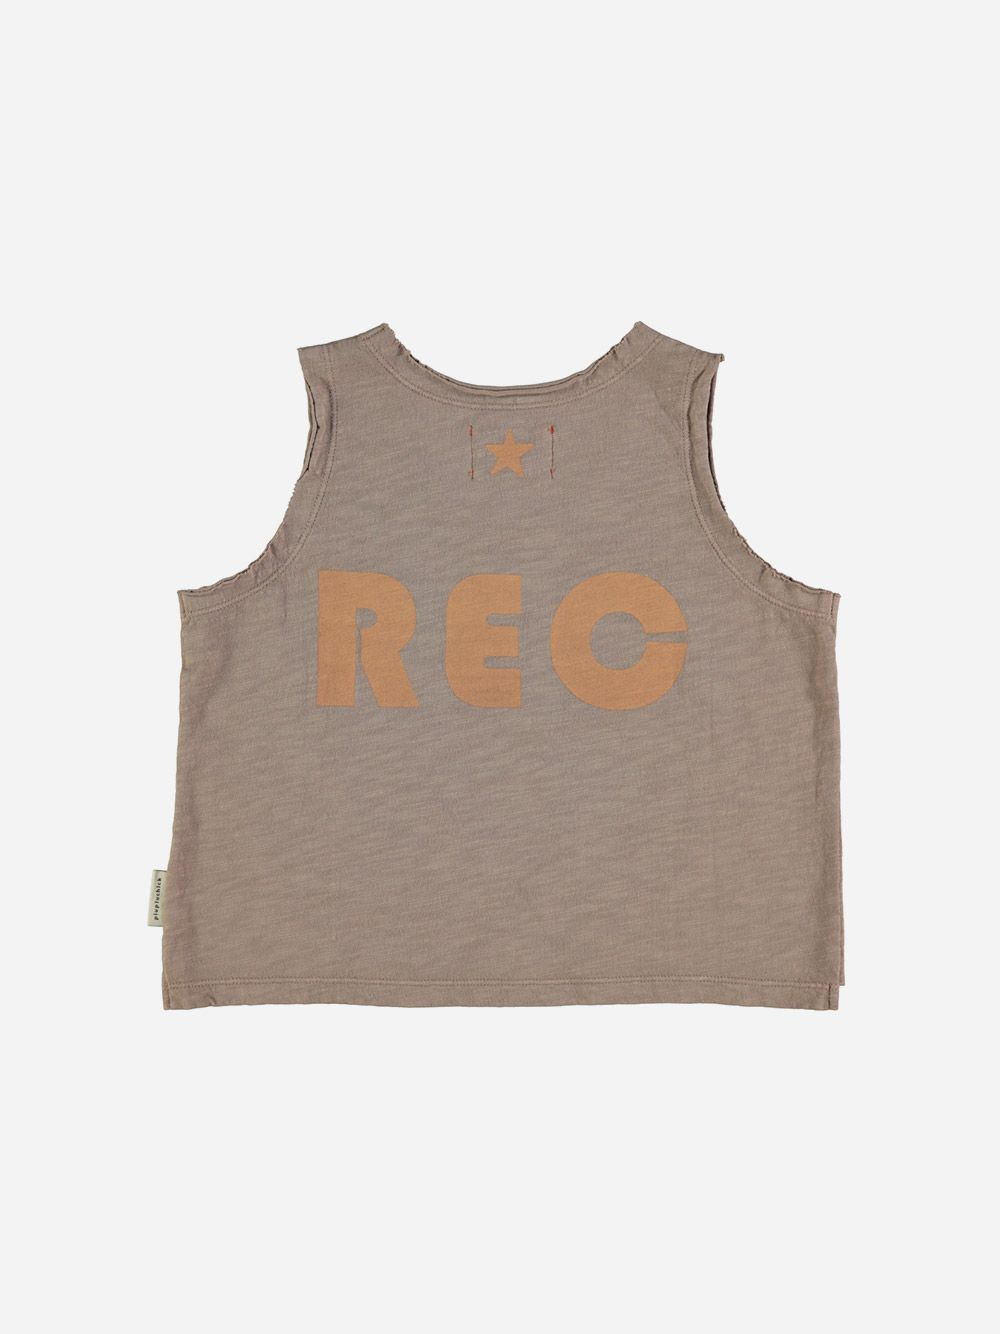 Baby Sleeveless T-shirt Taupe with Peach